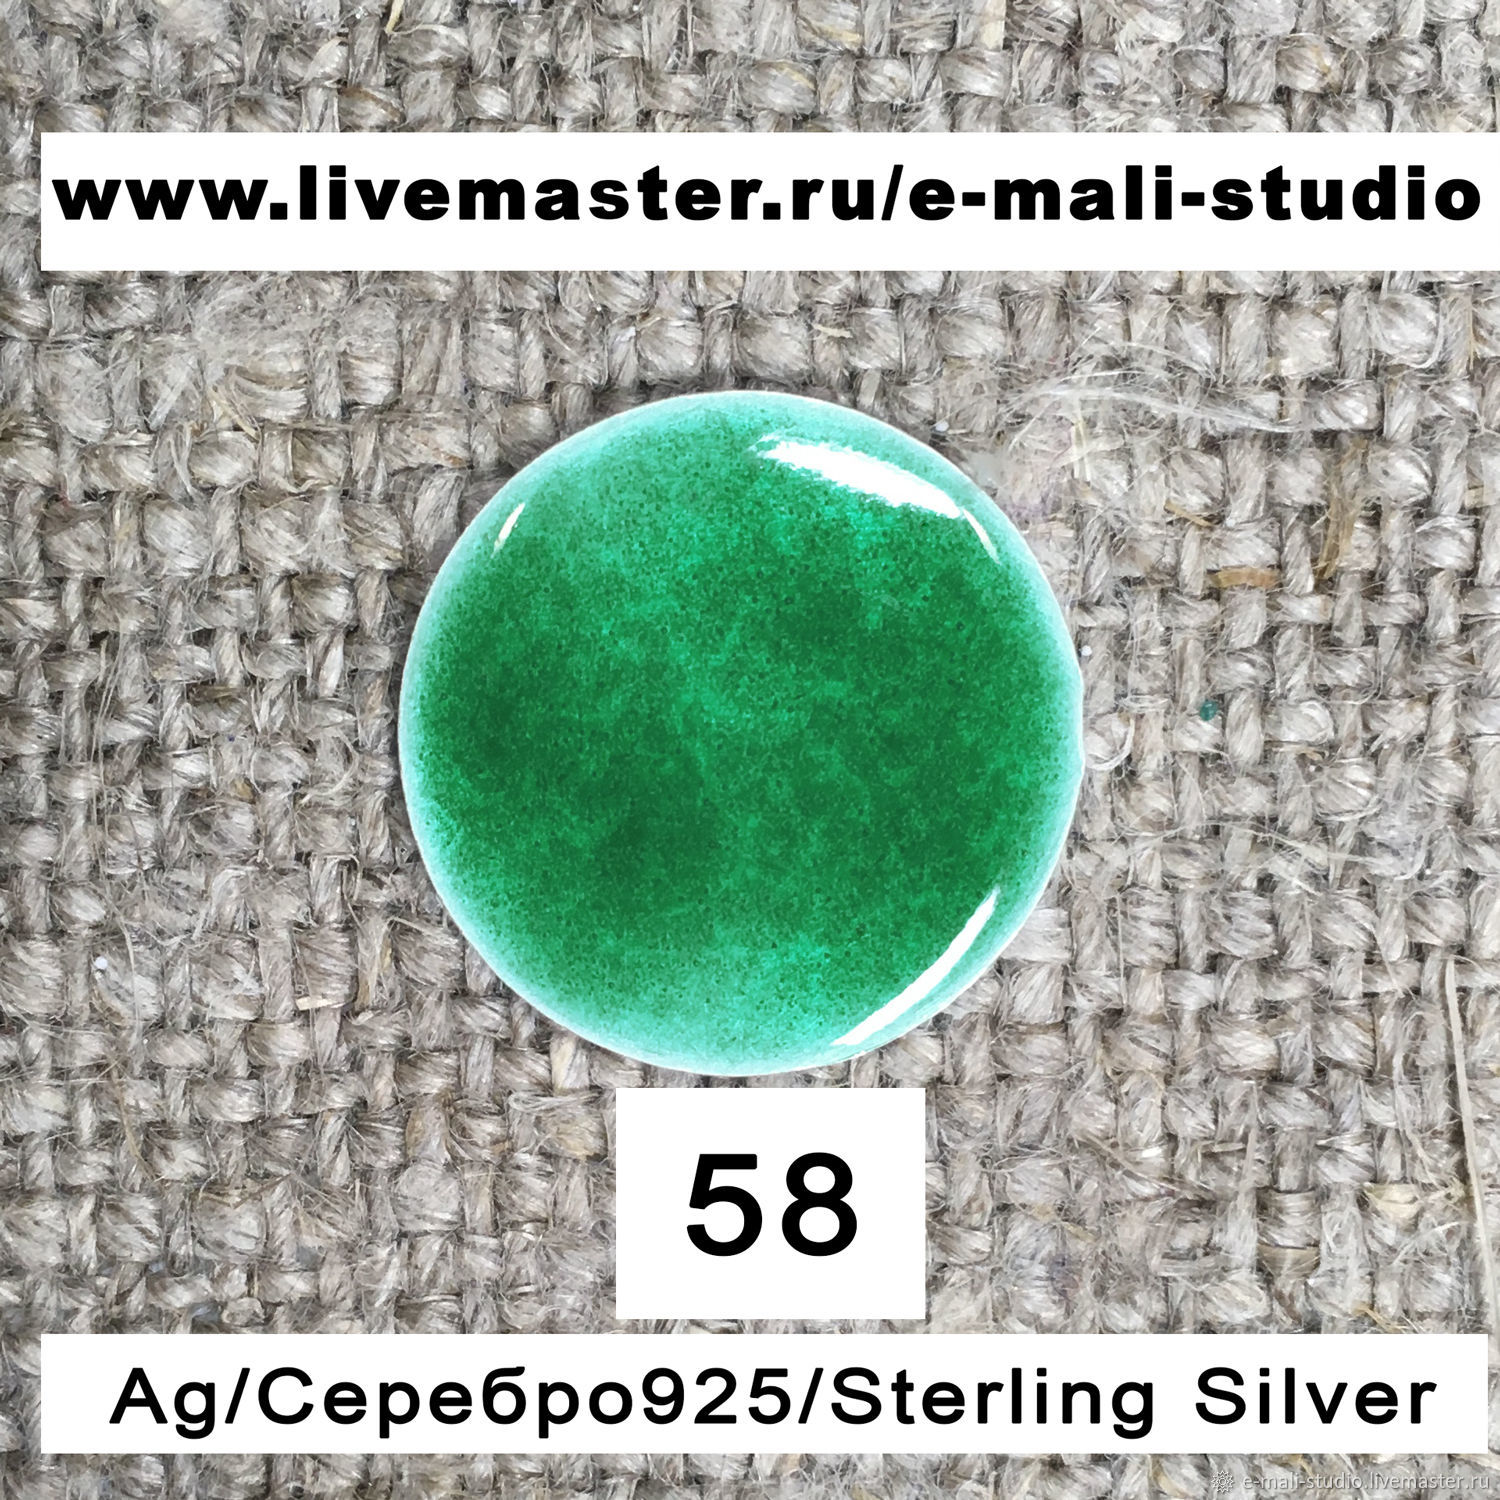 Enamel transparent Emerald Green No.58 Dulevo, Accessories for jewelry, St. Petersburg,  Фото №1